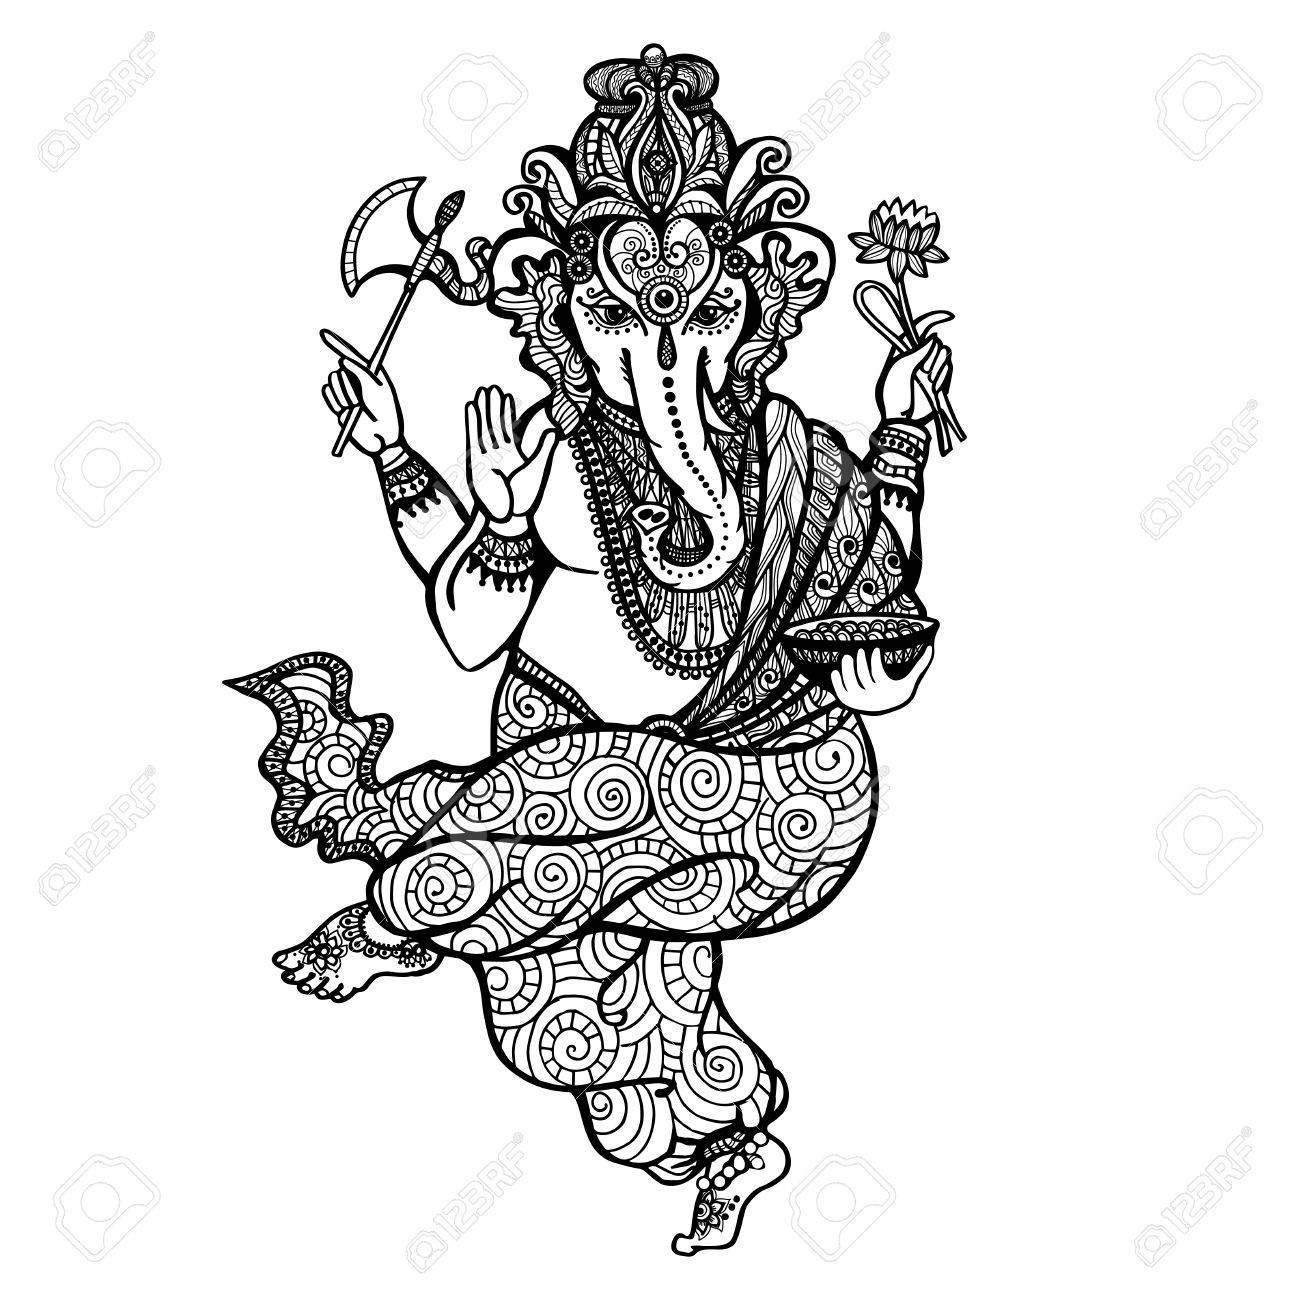 Hindu Gods Drawing At Getdrawings Com Free For Personal Use Hindu